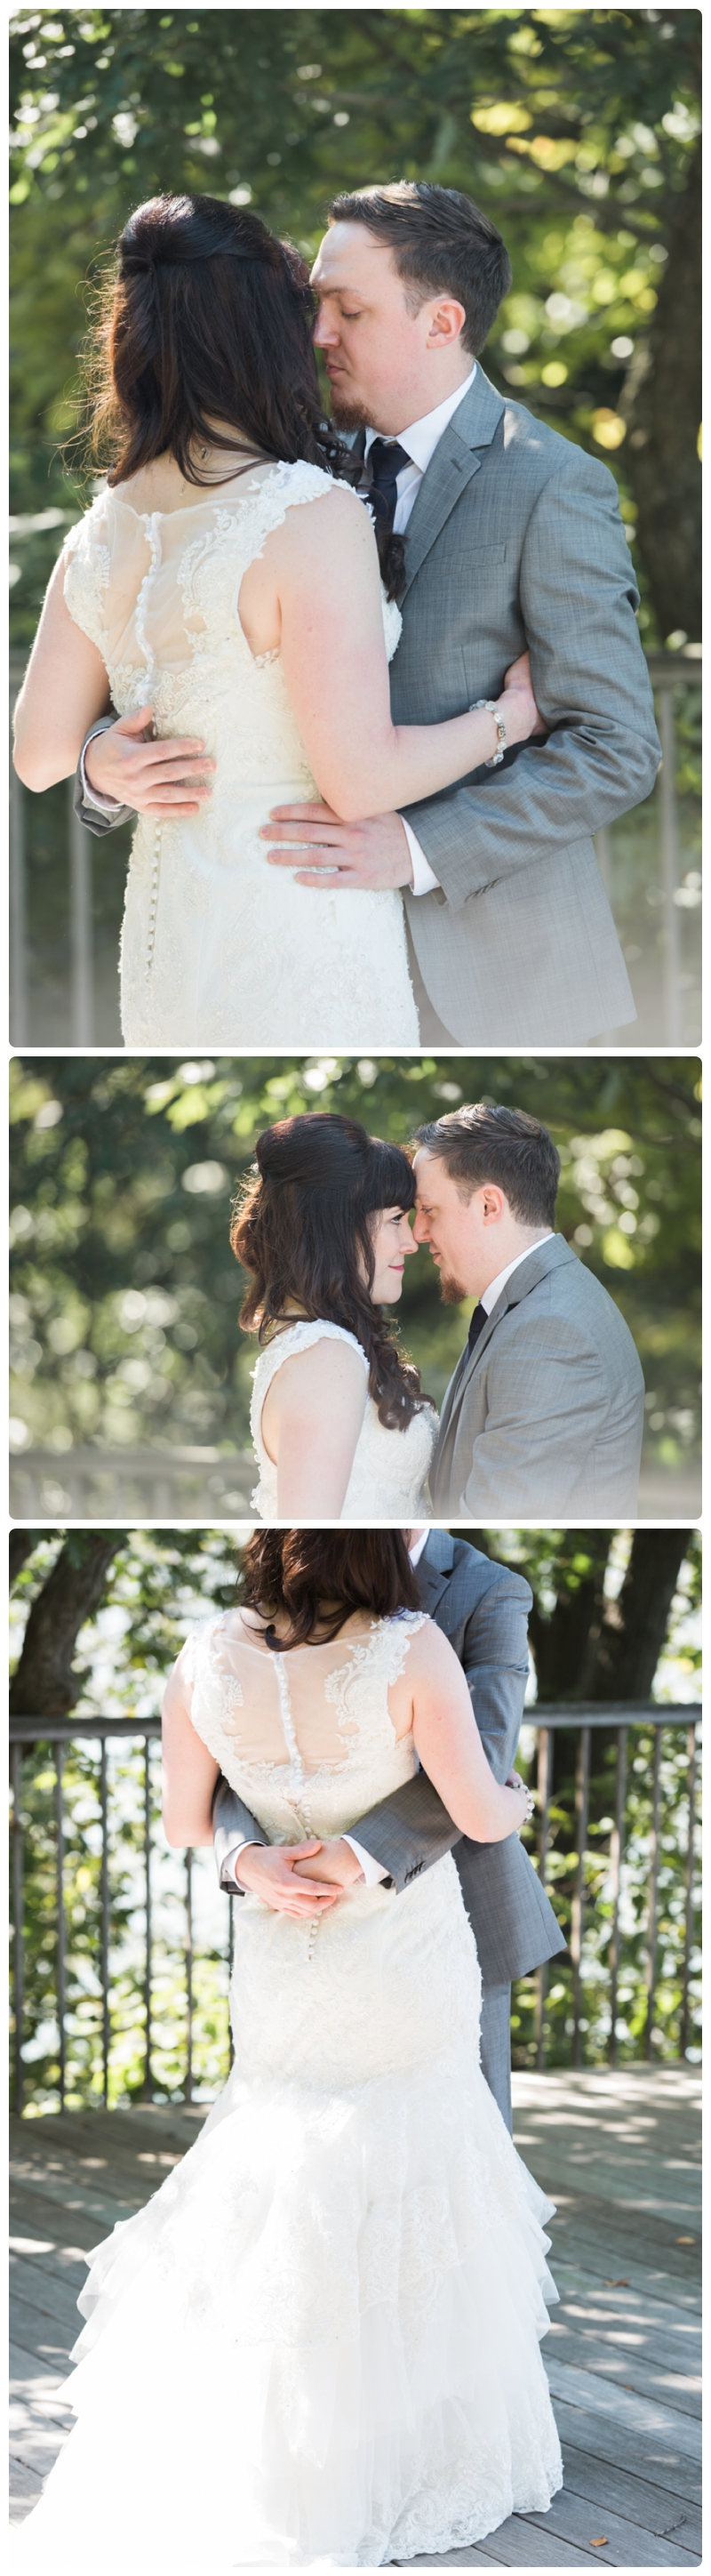 Backyard forest wedding in the Chicago suburbs by Rachael Foster Photography_0010.jpg